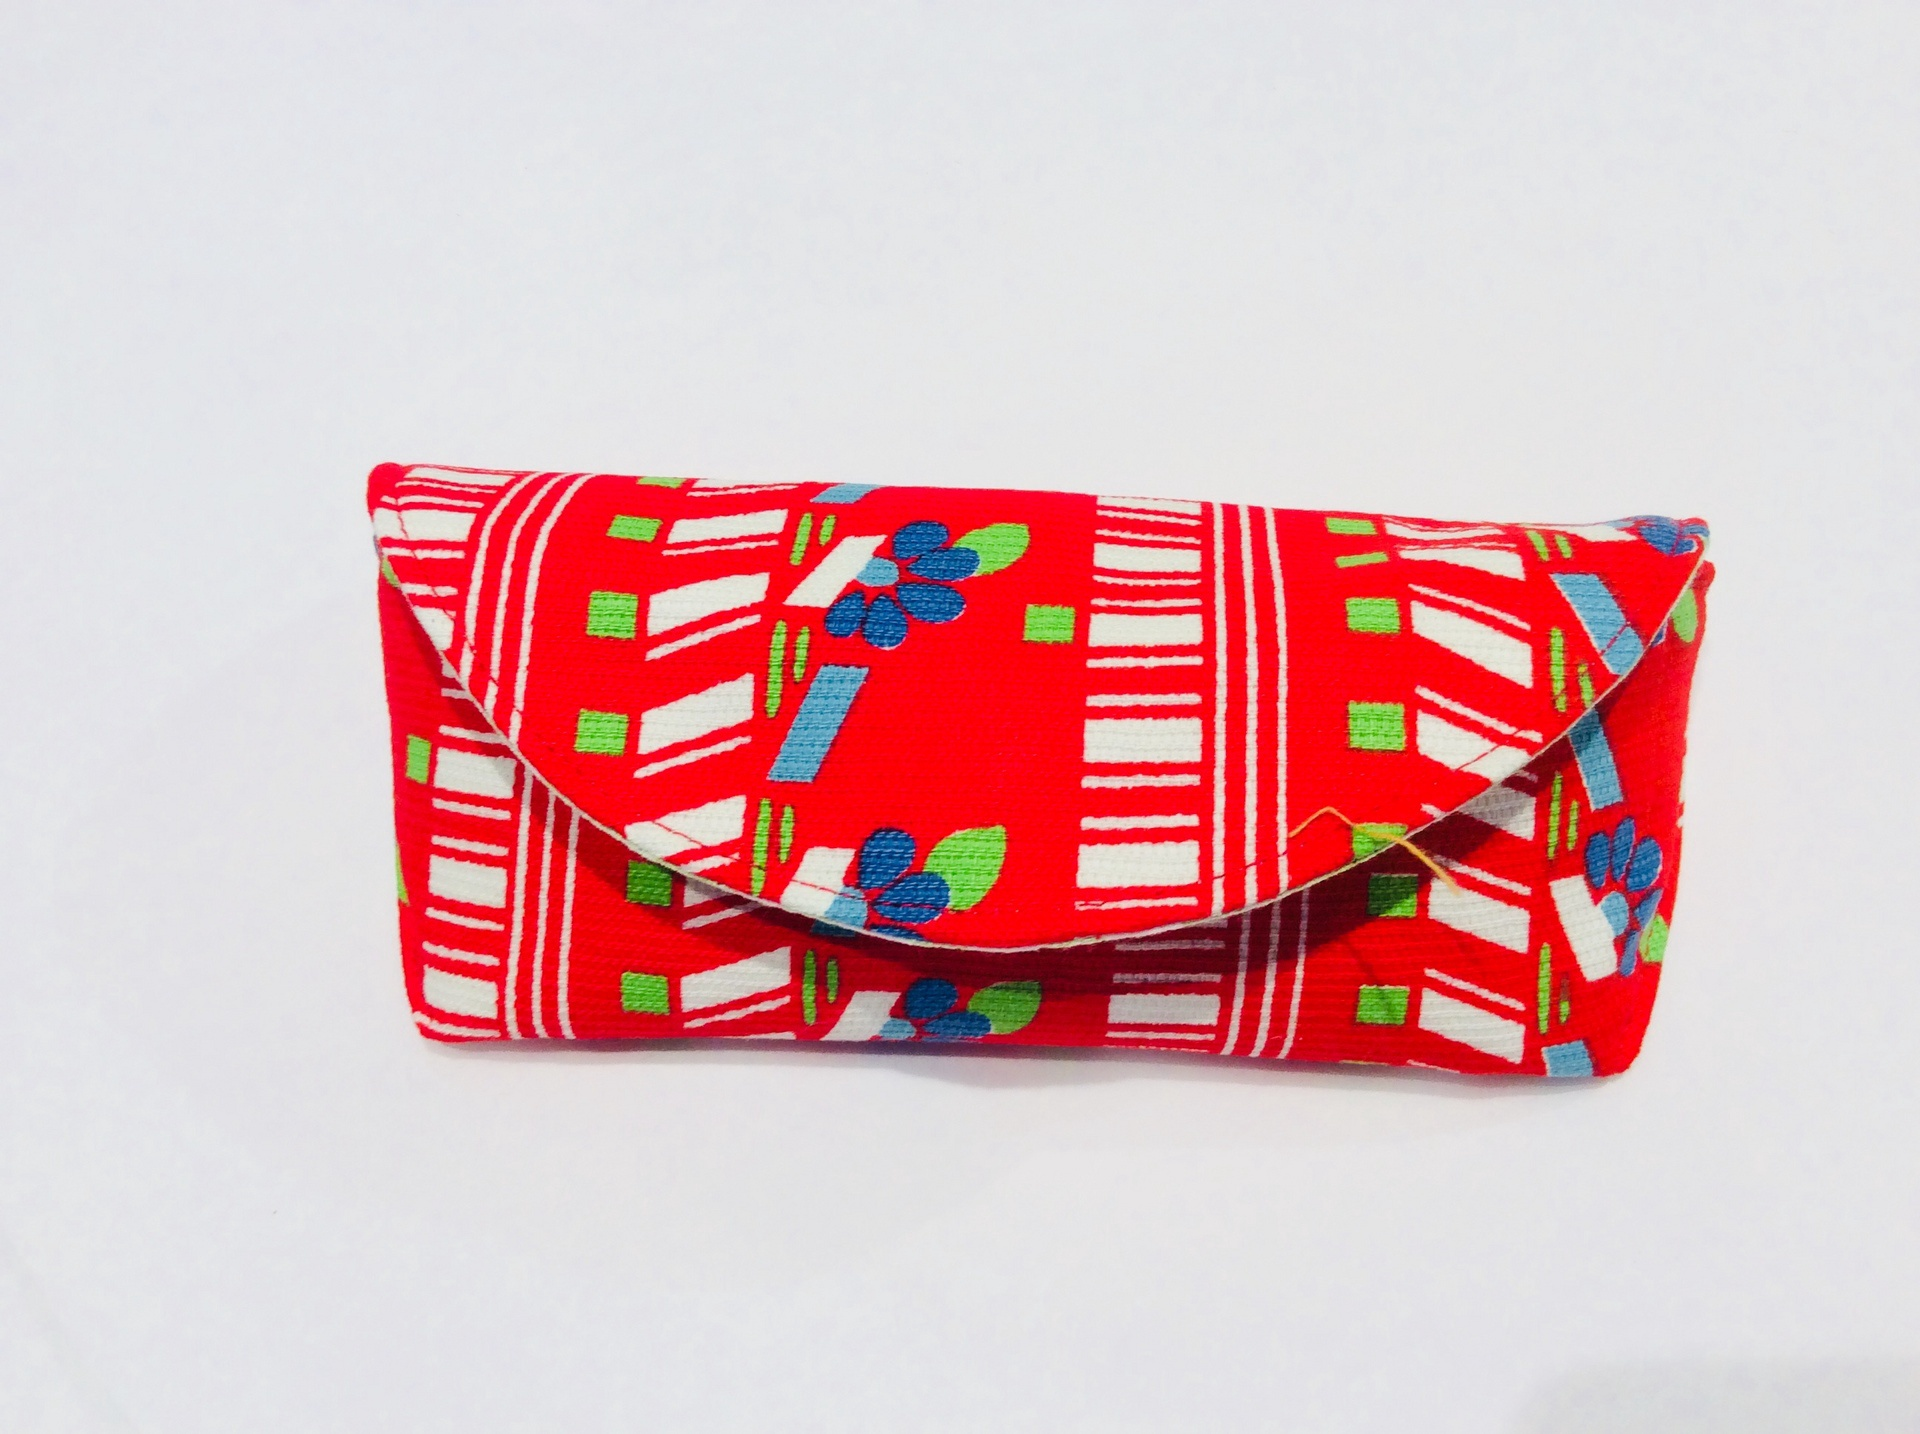 Funky Vintage Fabric Glasses Case - Red, Blue and Green